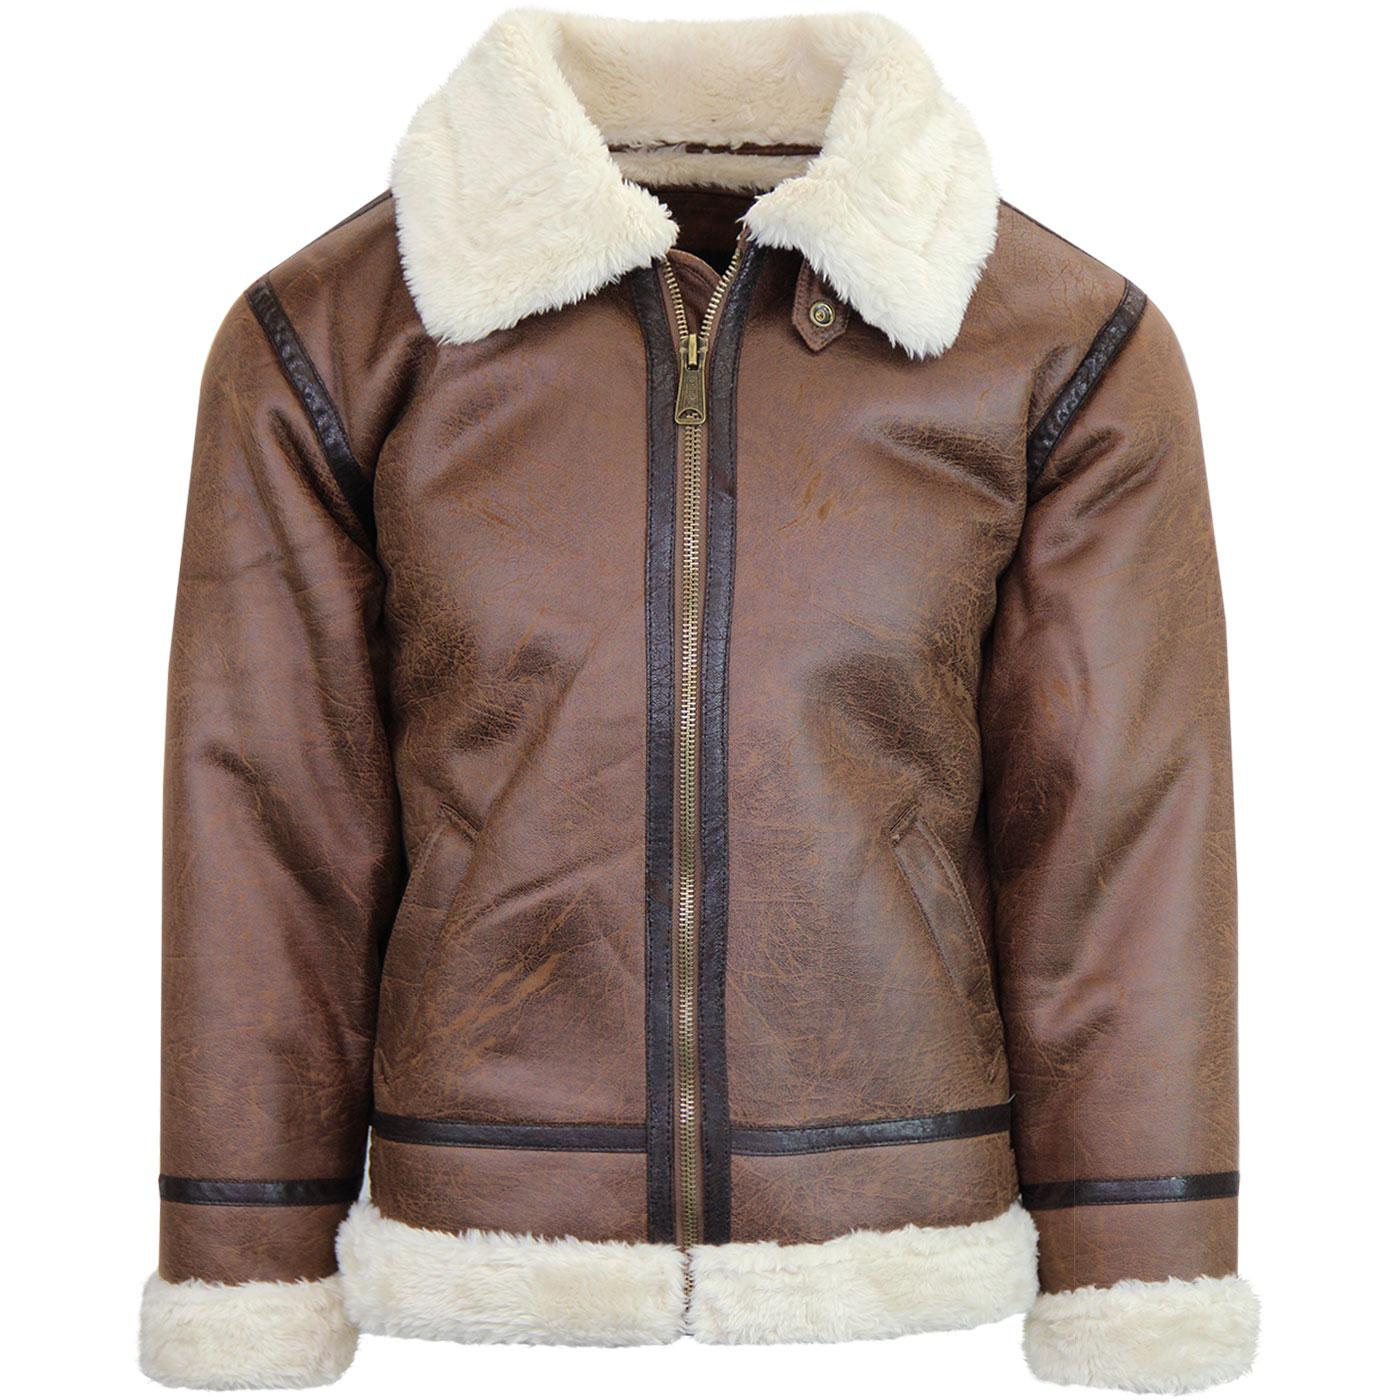 ALPHA INDUSTRIES Faux Leather B3 Flight Jacket Brn